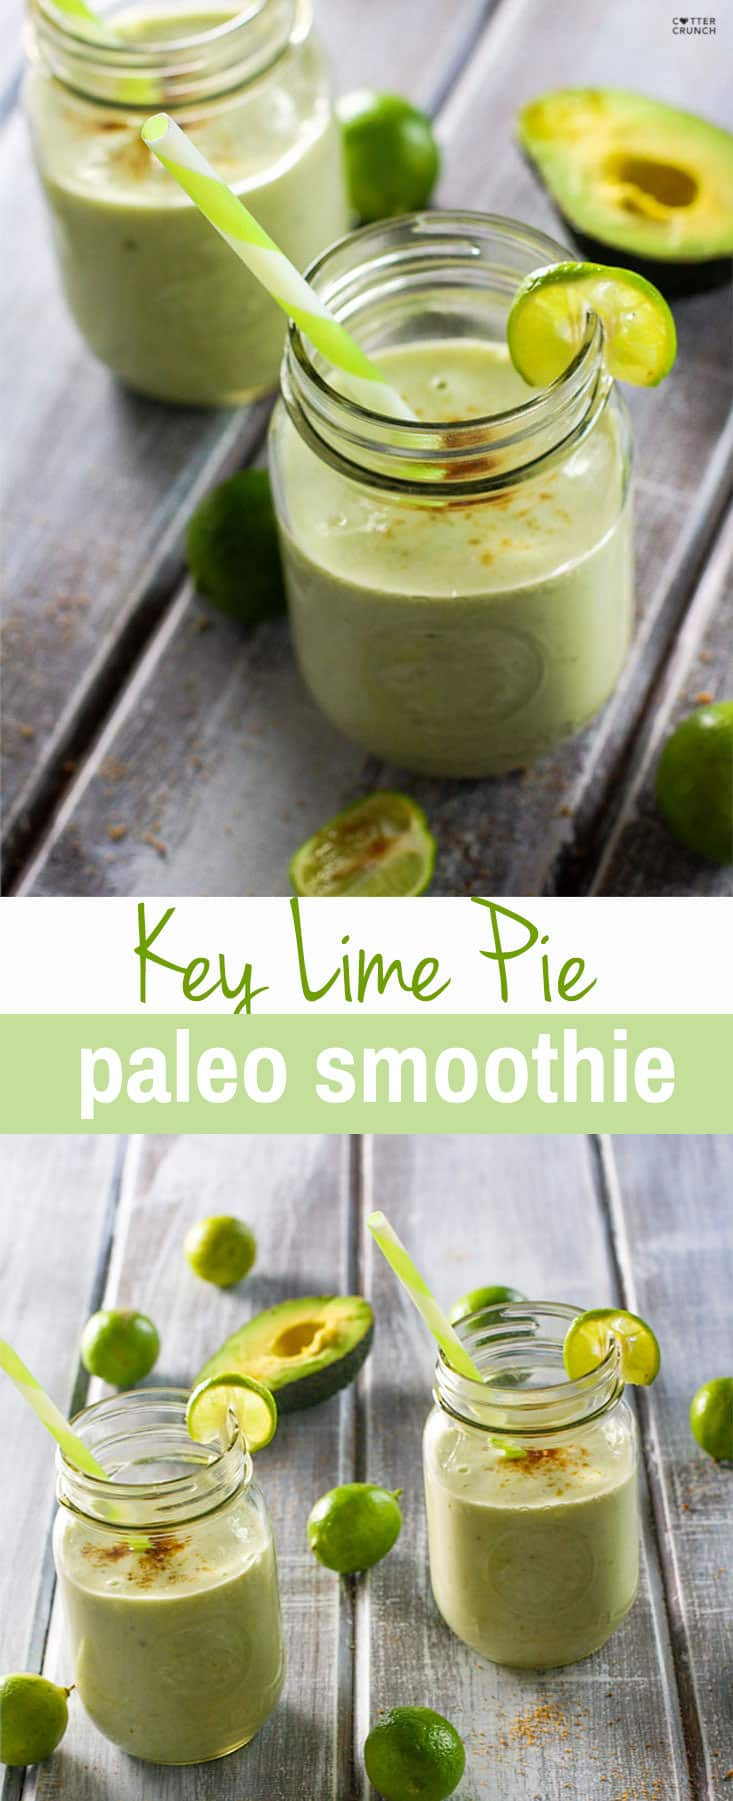 Creamy and naturally sweetened Paleo Key Lime Smoothie! Gluten free and dairy free but still tastes like dessert. A Healthy Smoothie packed with nutrients! Great for breakfast, snacking, and soothing for your digestion!